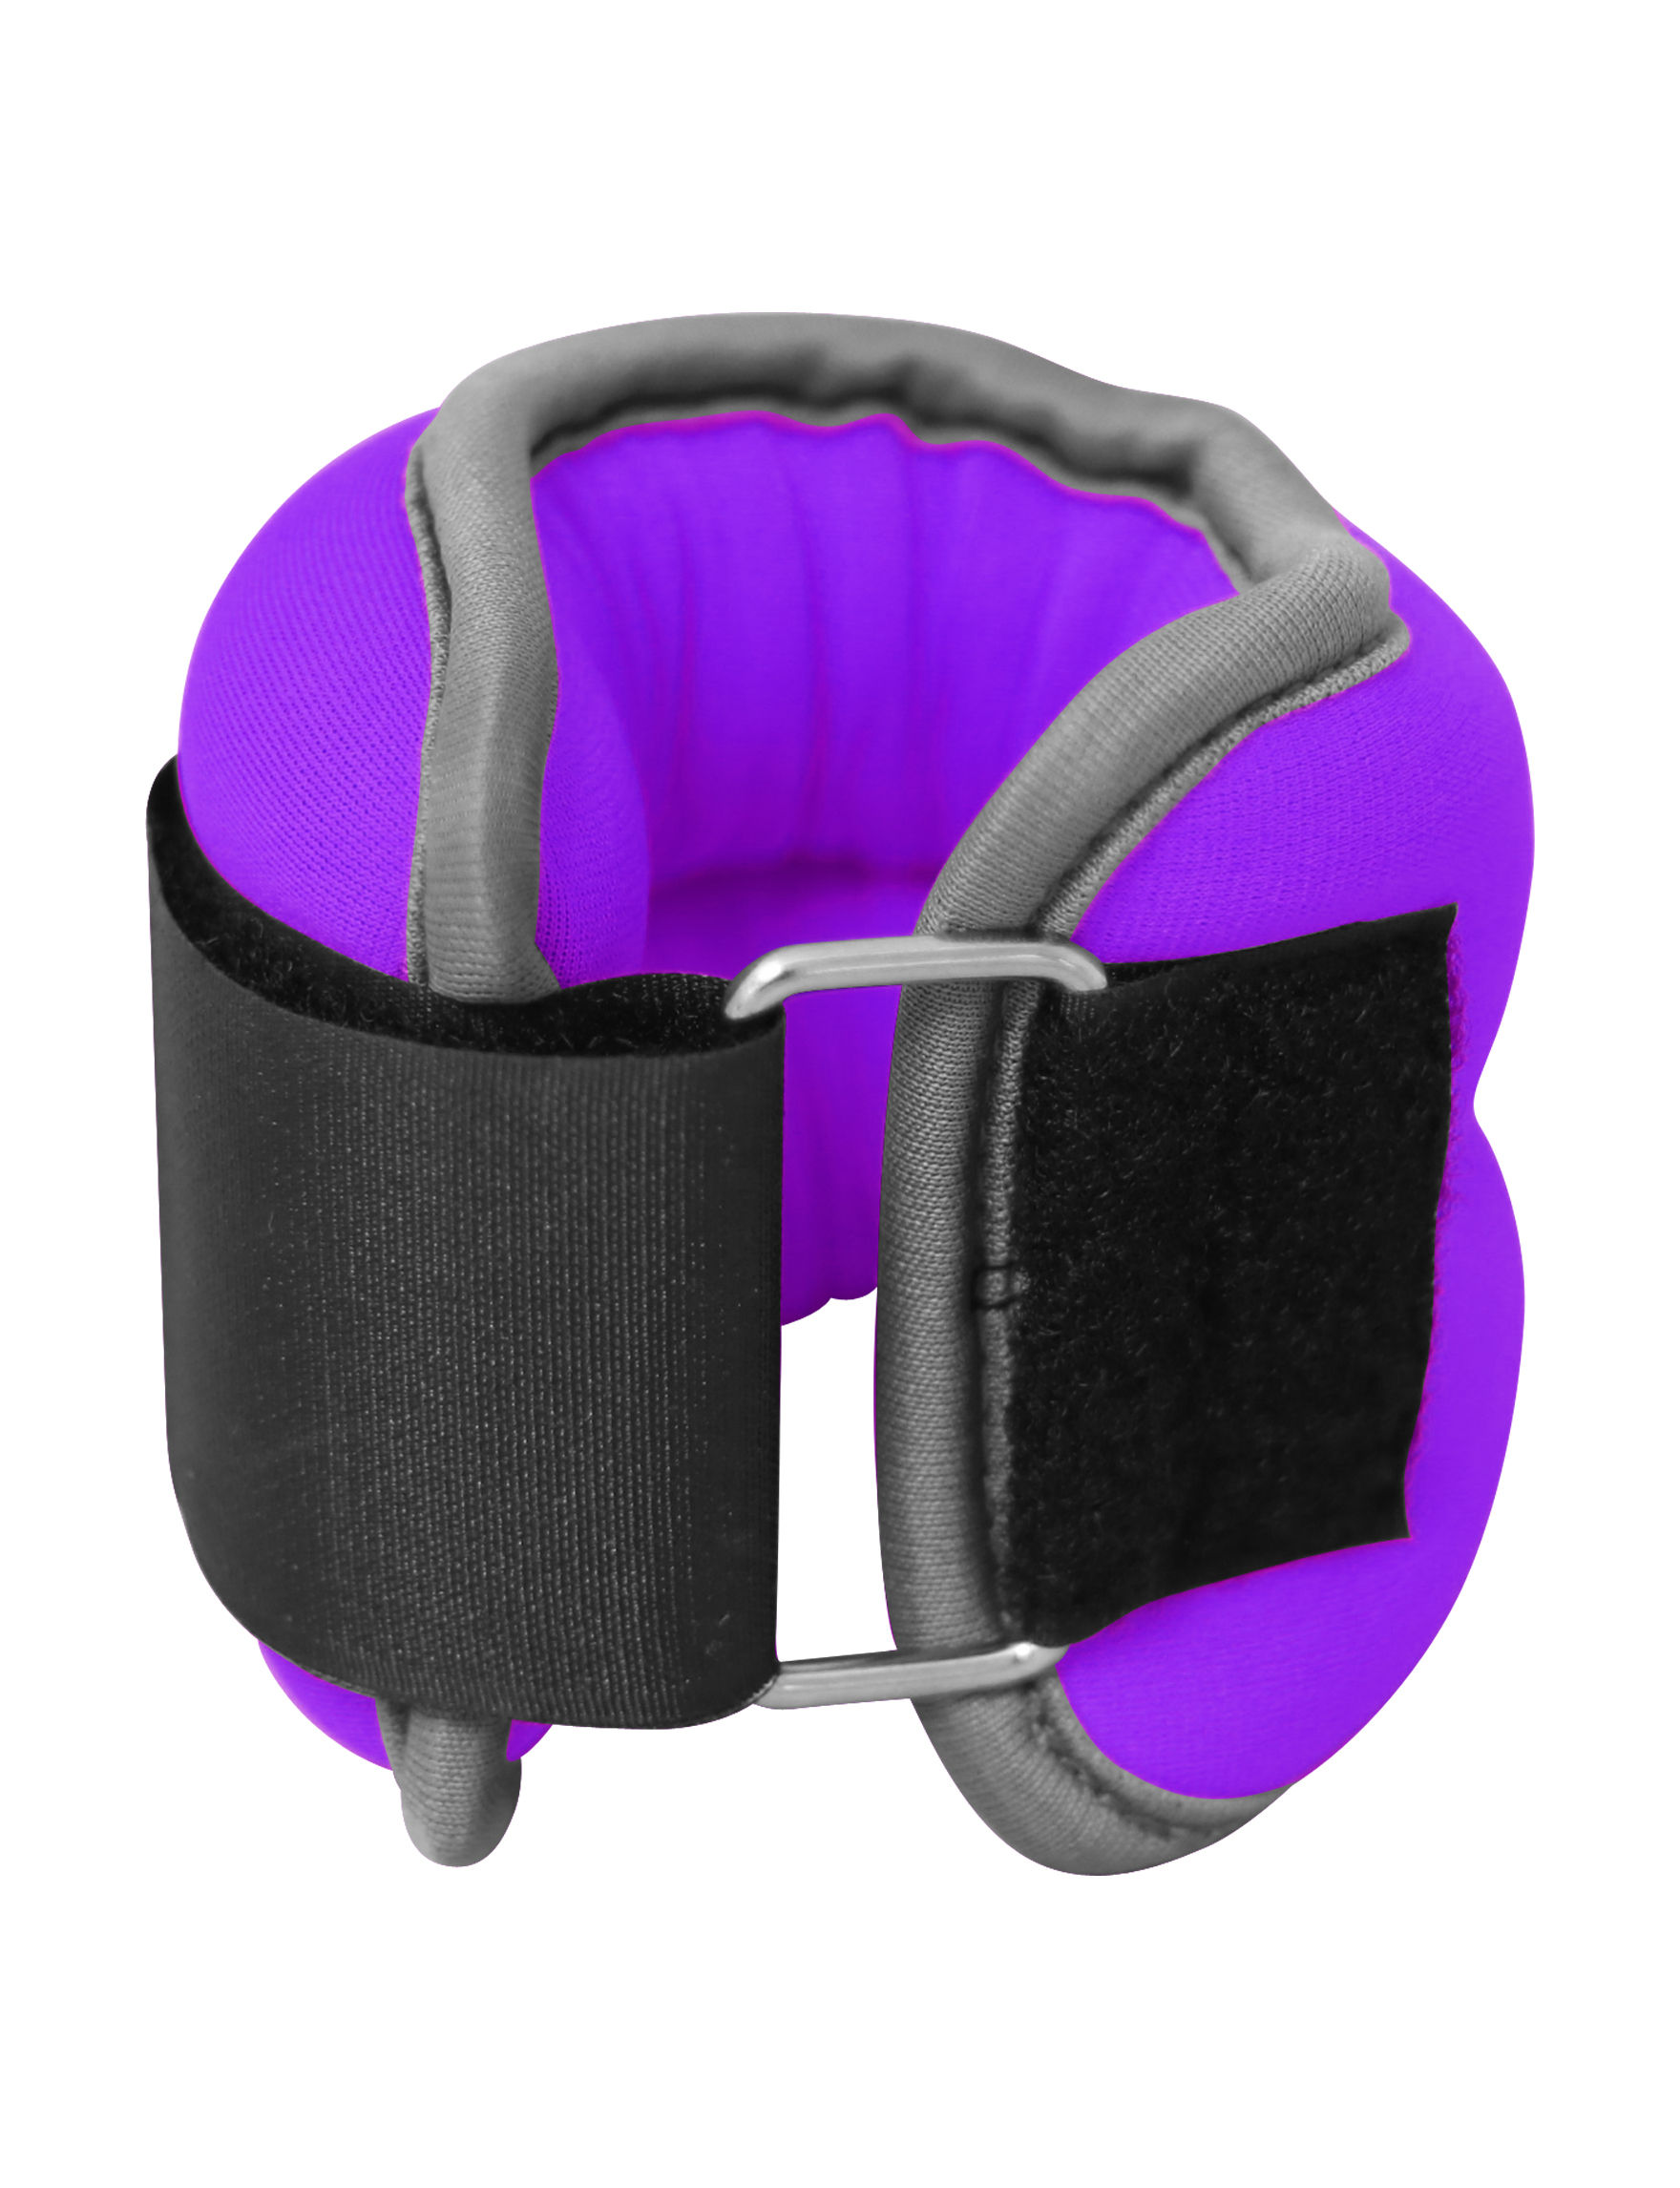 Gourmet Home Purple Fitness Equipment